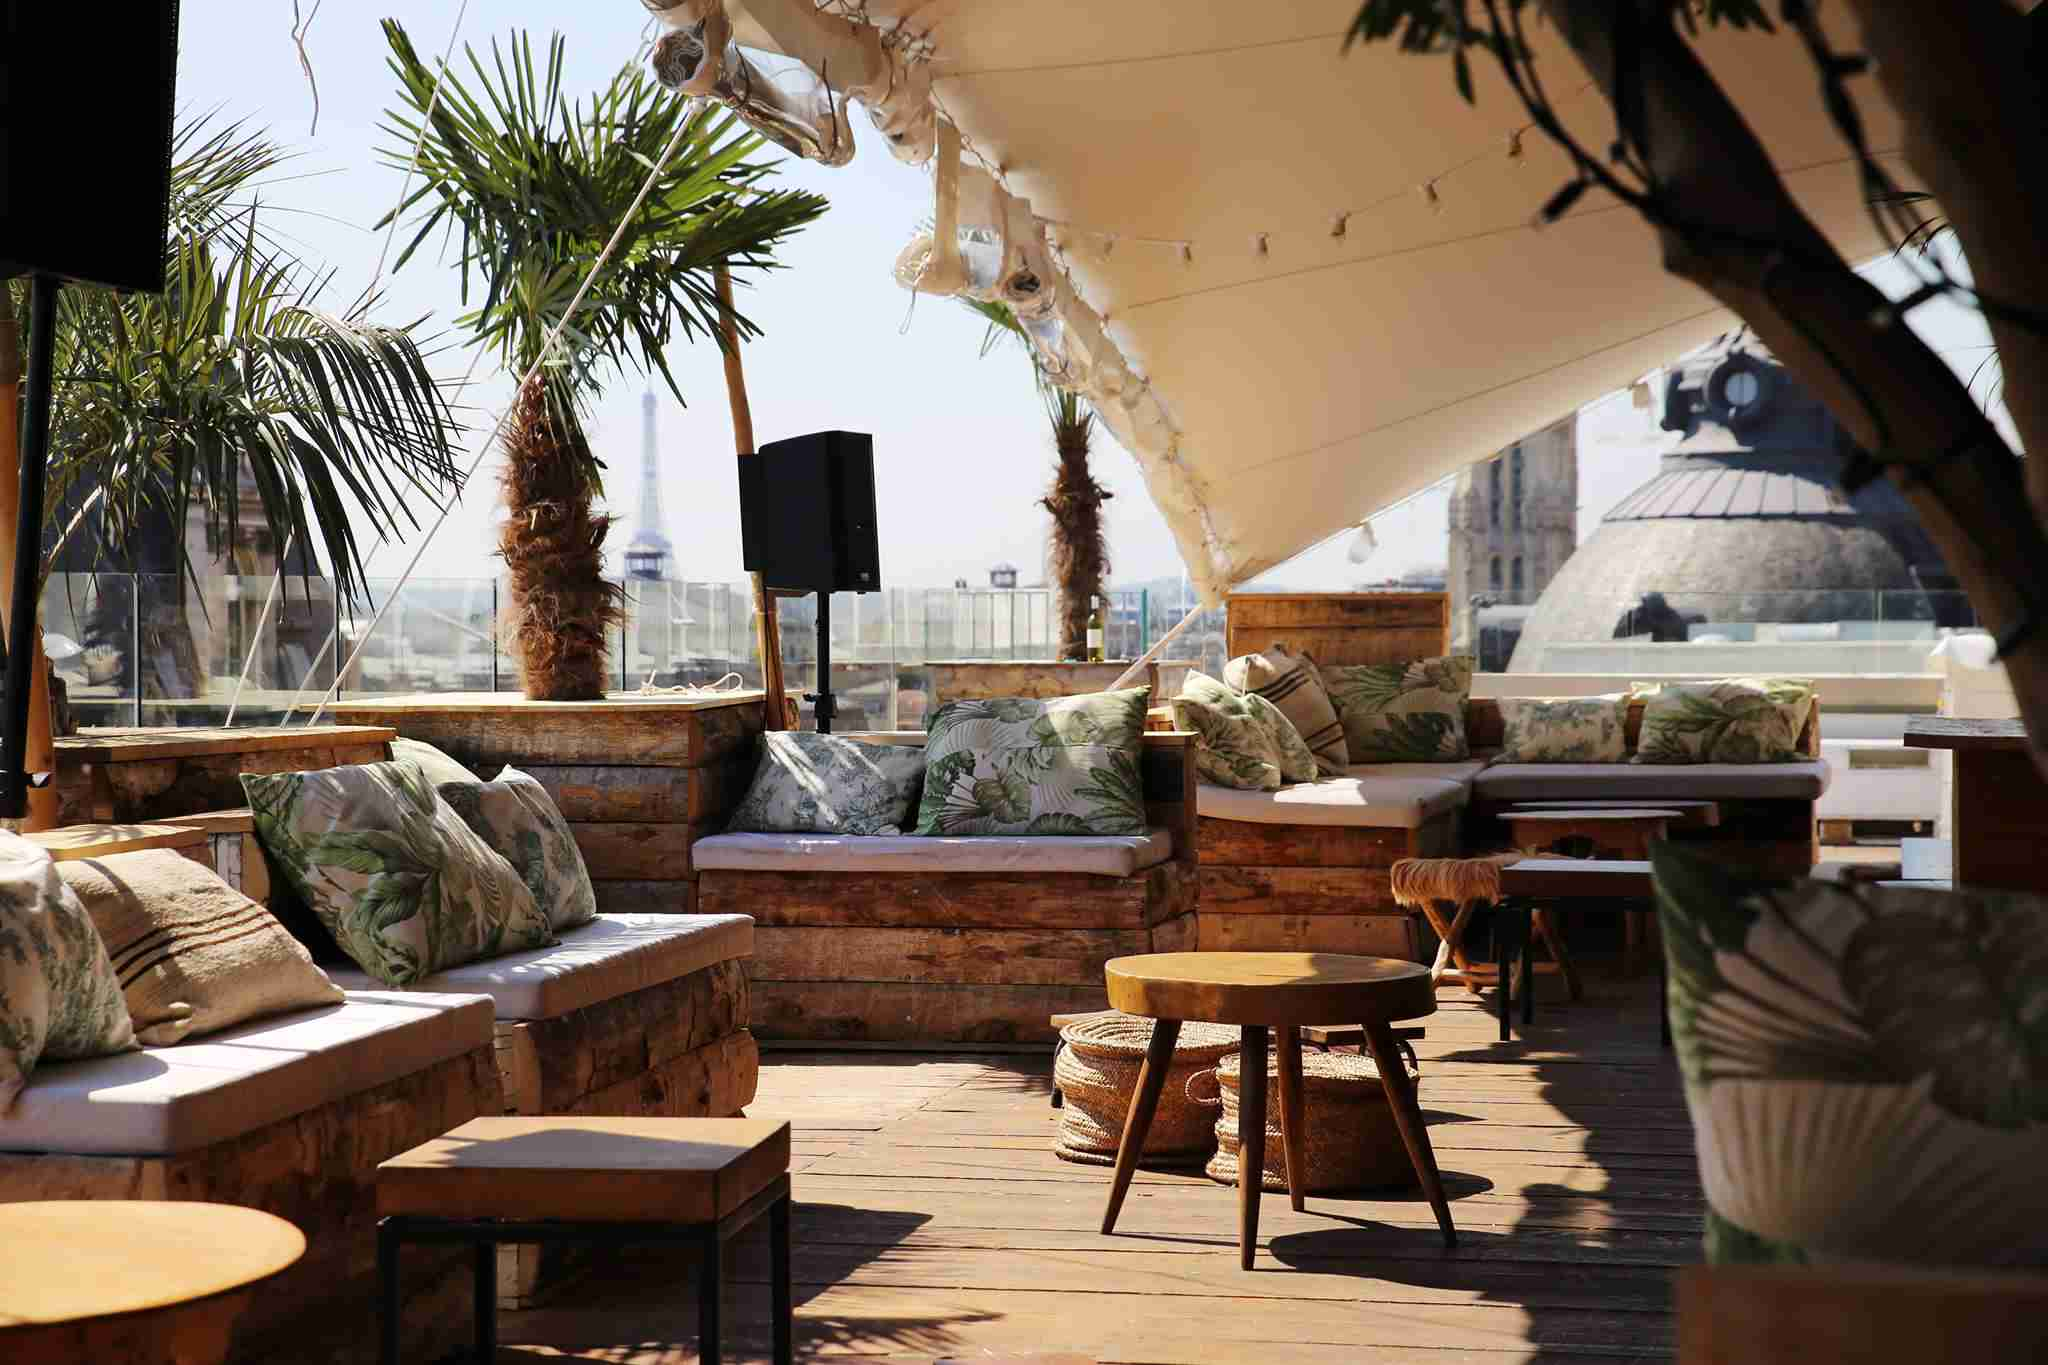 The Perchoir Marais rooftop bar is bright and cheerful, with a lazy-Floridan feel.